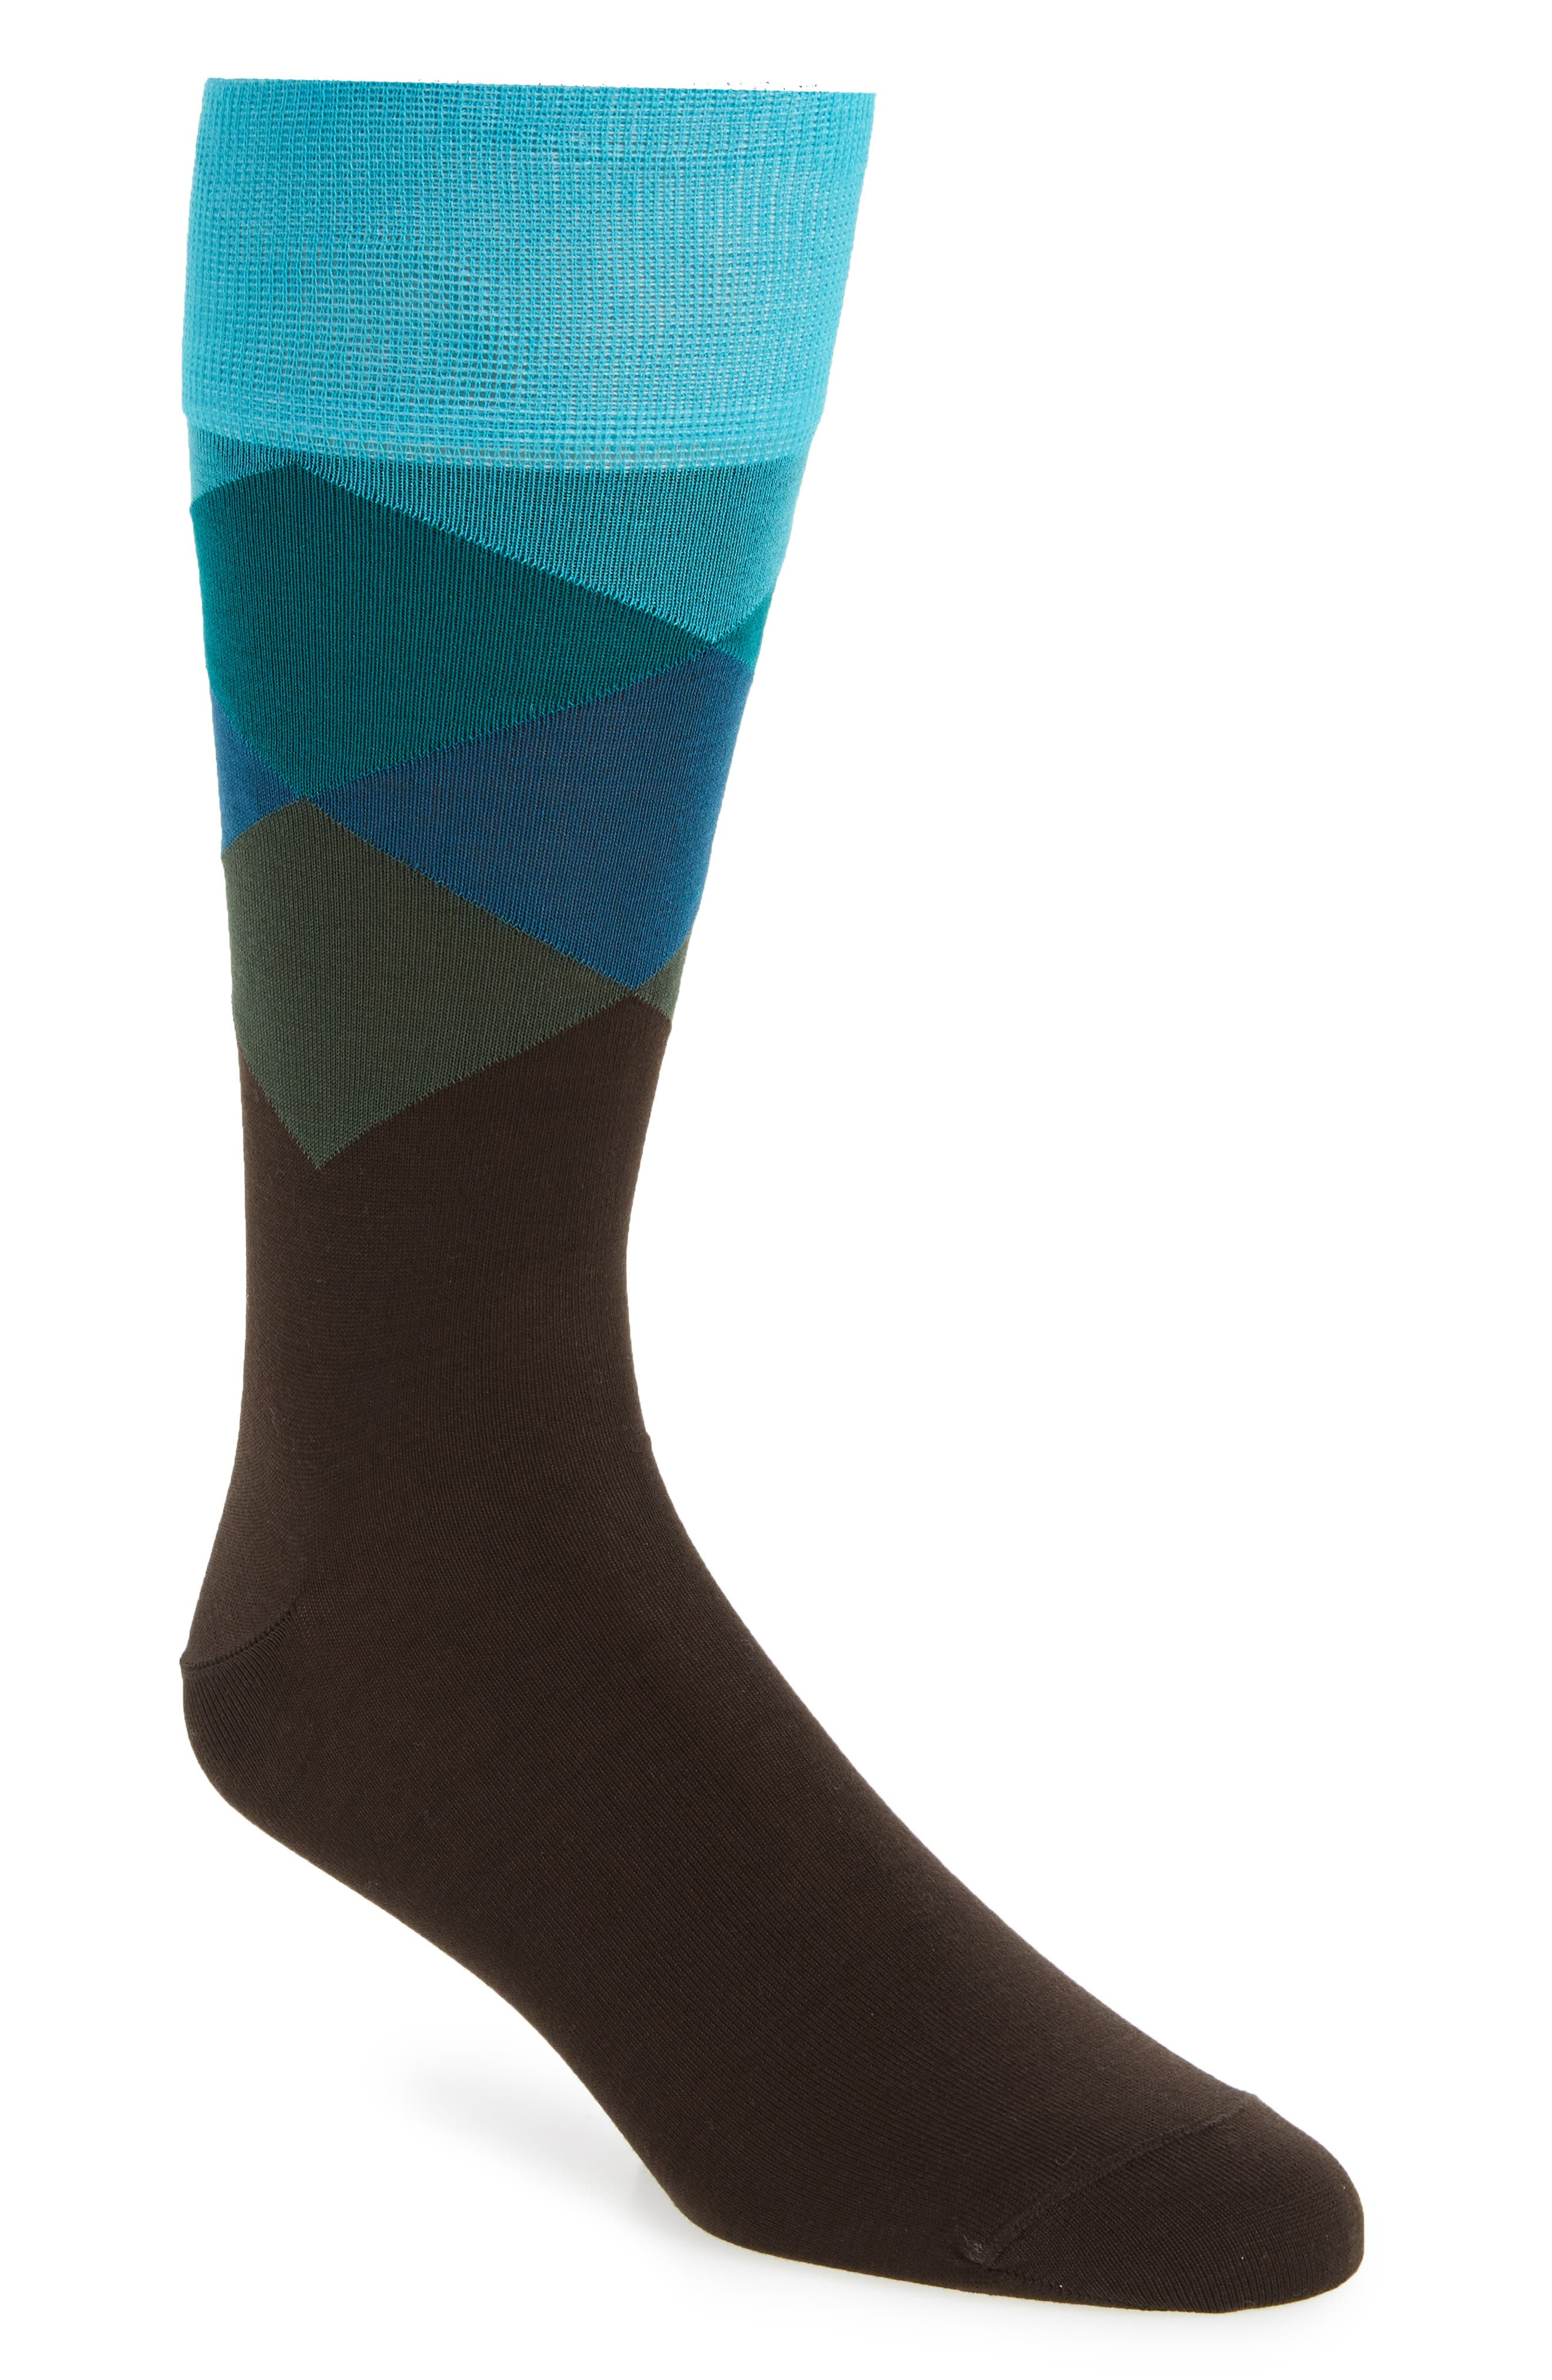 Diamond Socks,                             Main thumbnail 1, color,                             201